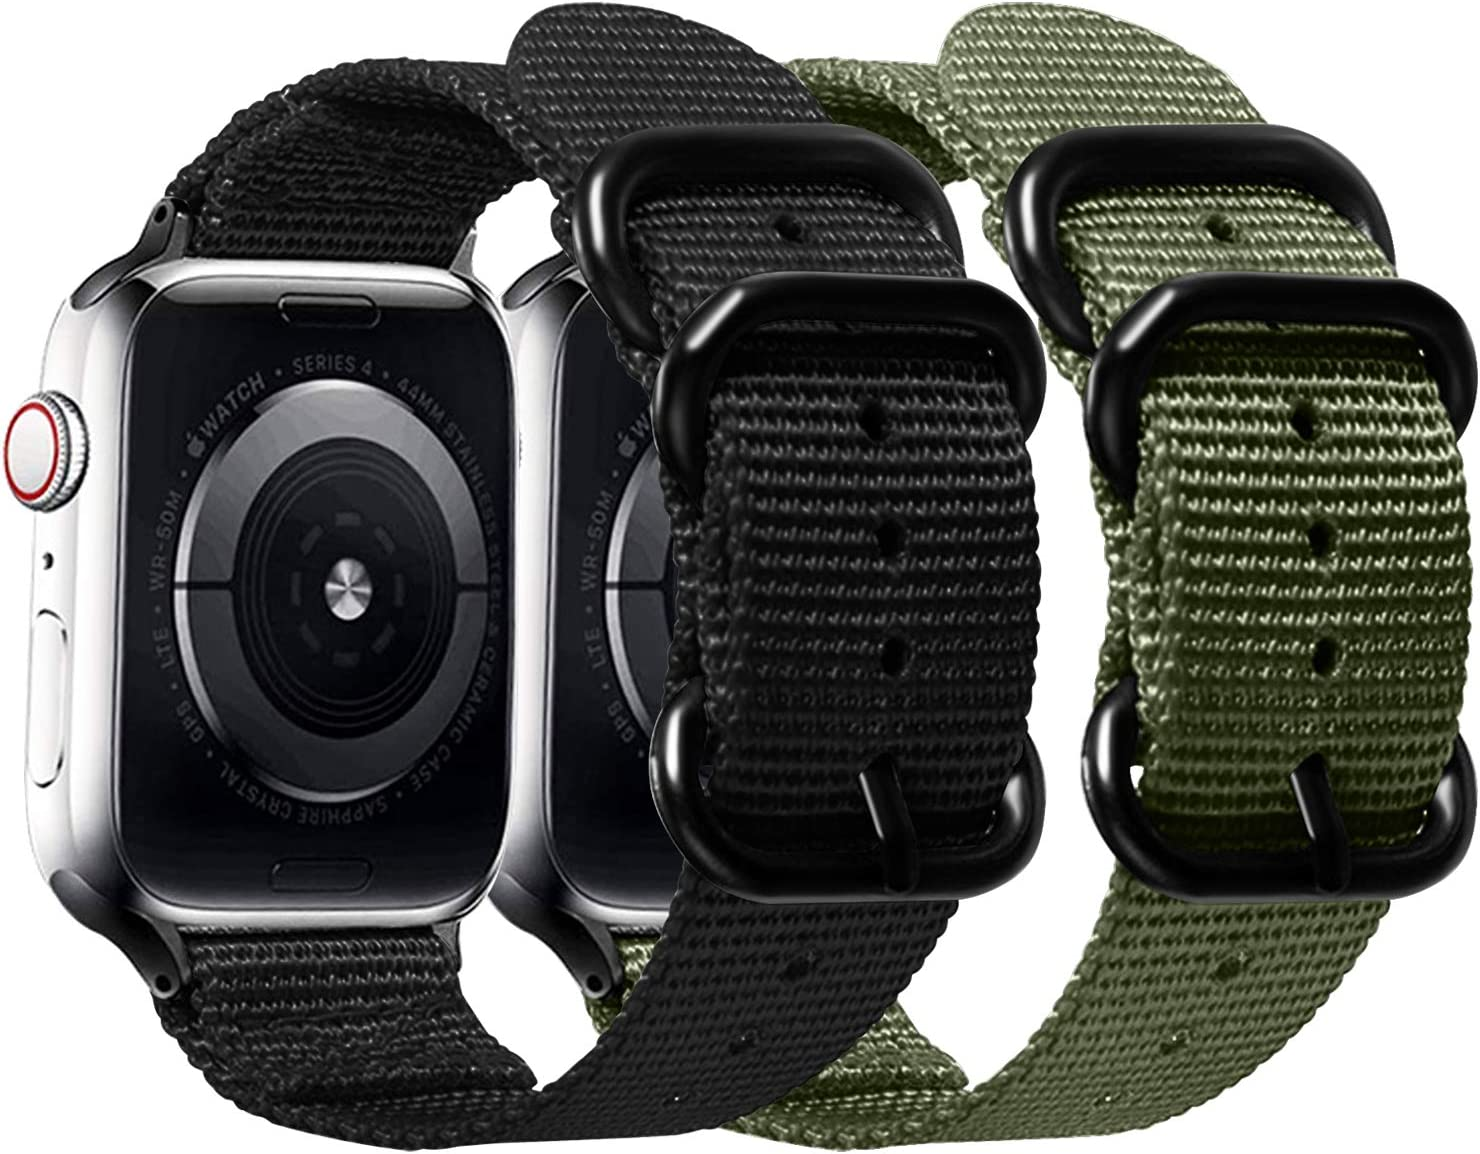 Misker Nylon Band Compatible with Apple Watch Band 44mm 42mm 40mm 38mm,Breathable Sport Strap with Metal Buckle Compatible with iwatch Series 5/4/3/2/1 (2-Packs Army Green/Black, 38mm/40mm)